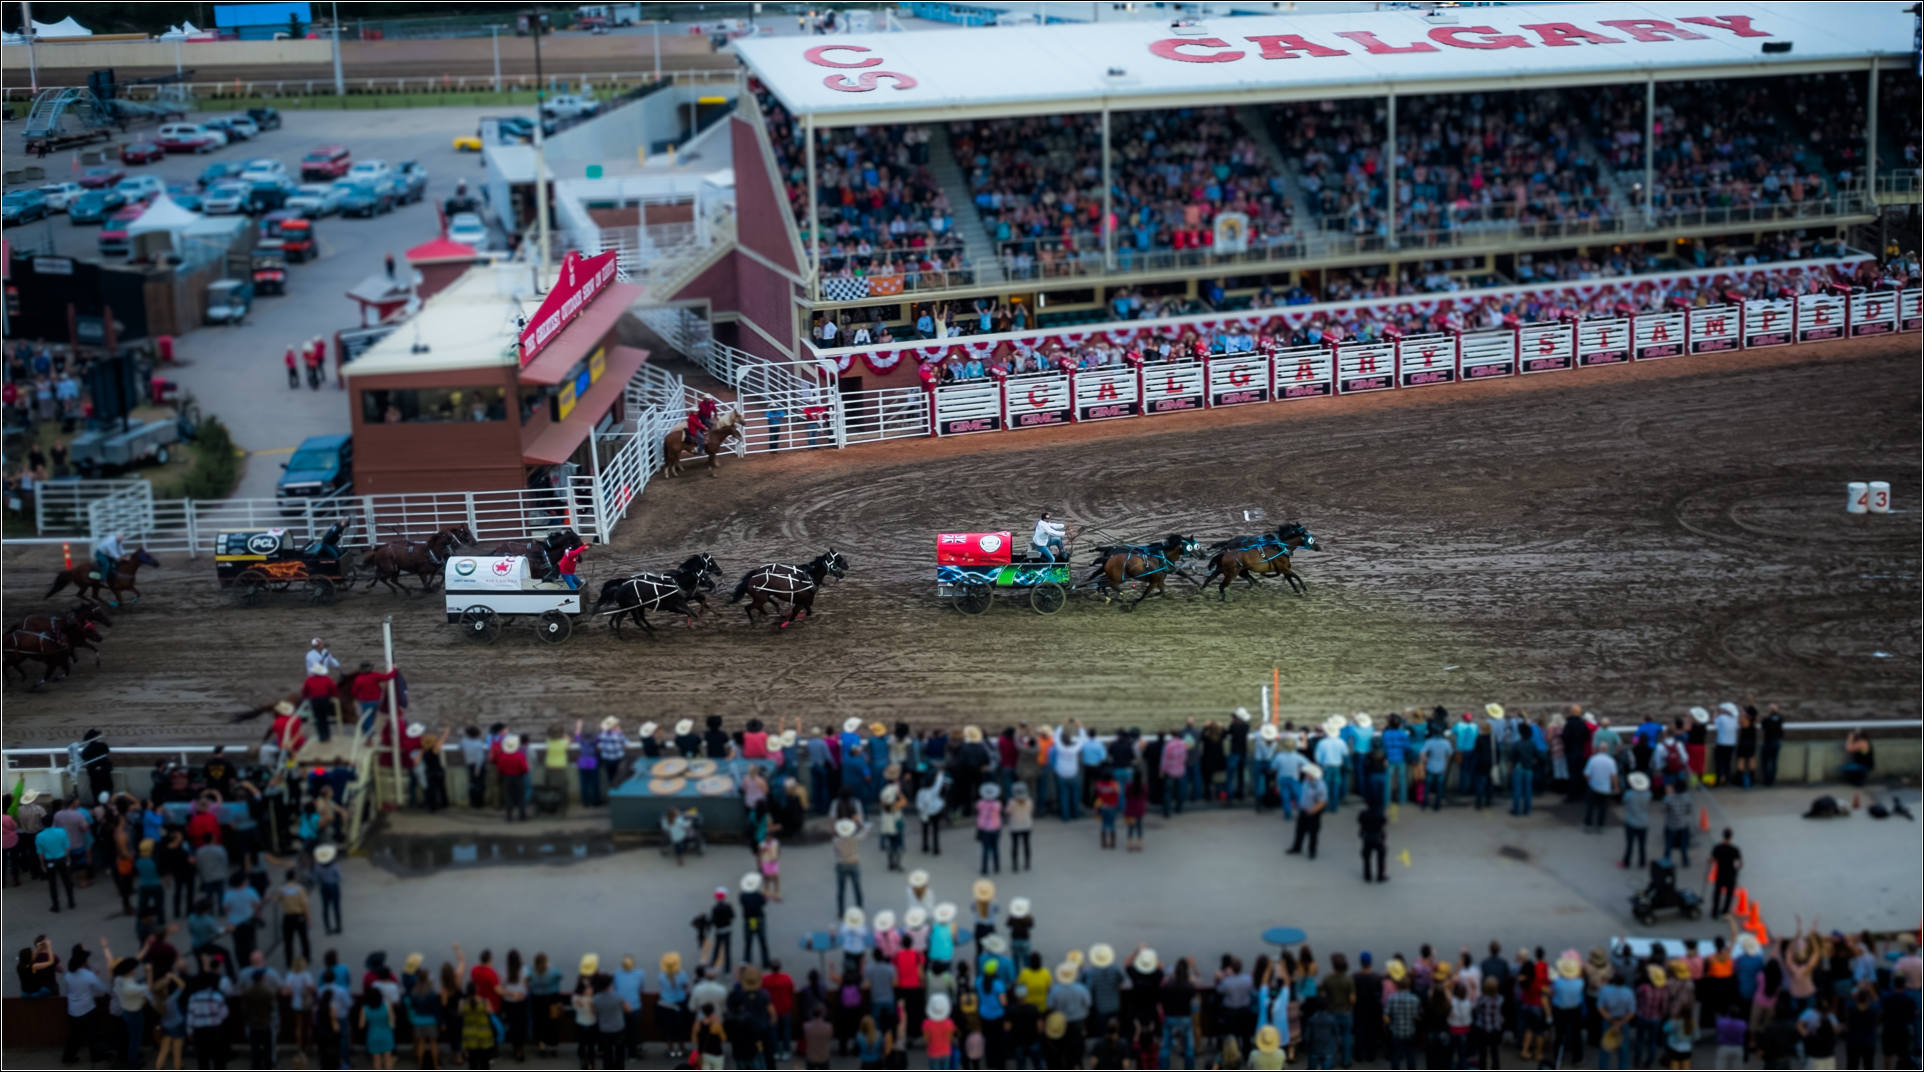 The Last Night At The 2015 Calgary Stampede Christopher